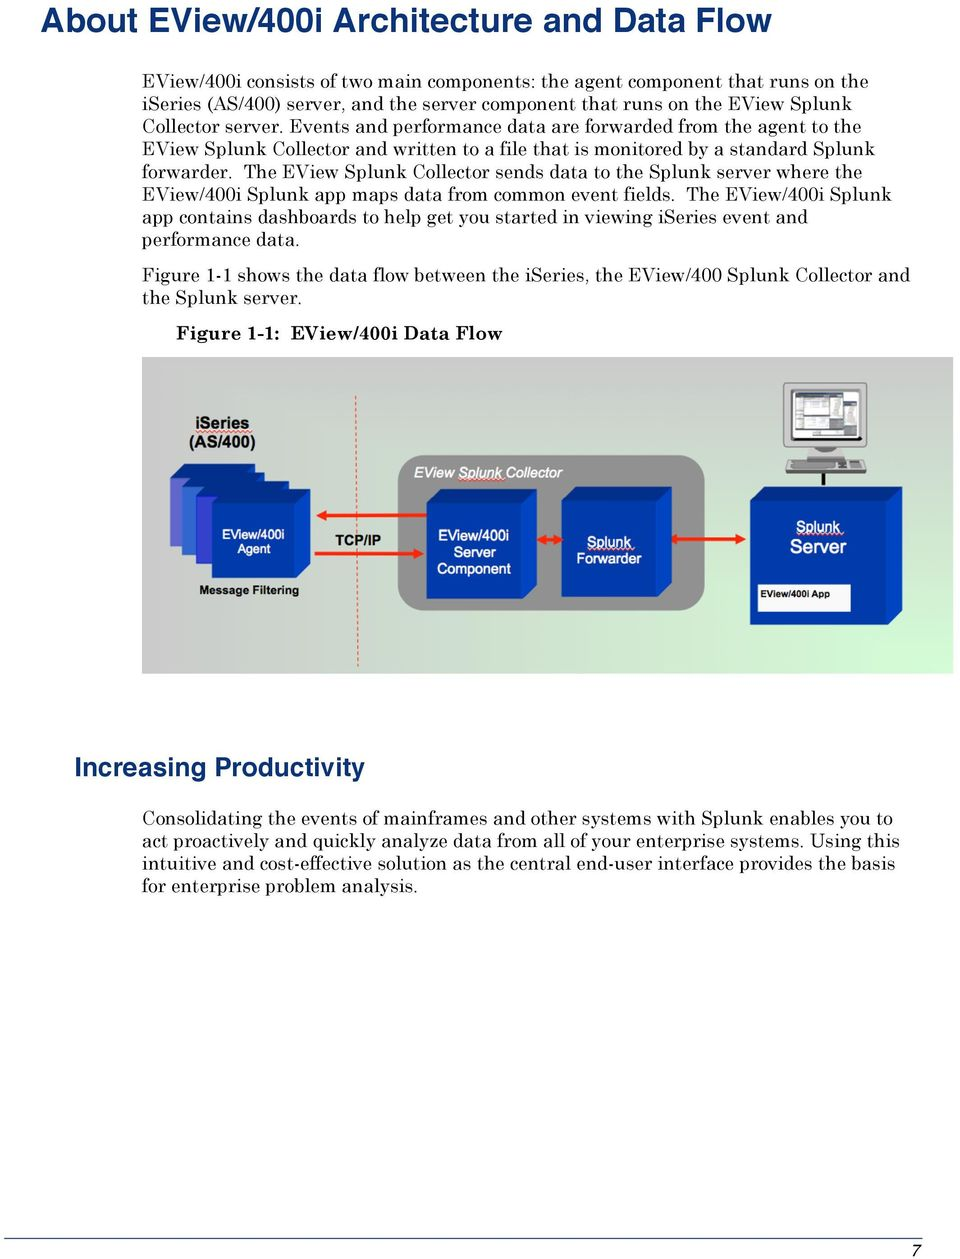 EView/400i Insight for iseries (AS/400) - PDF